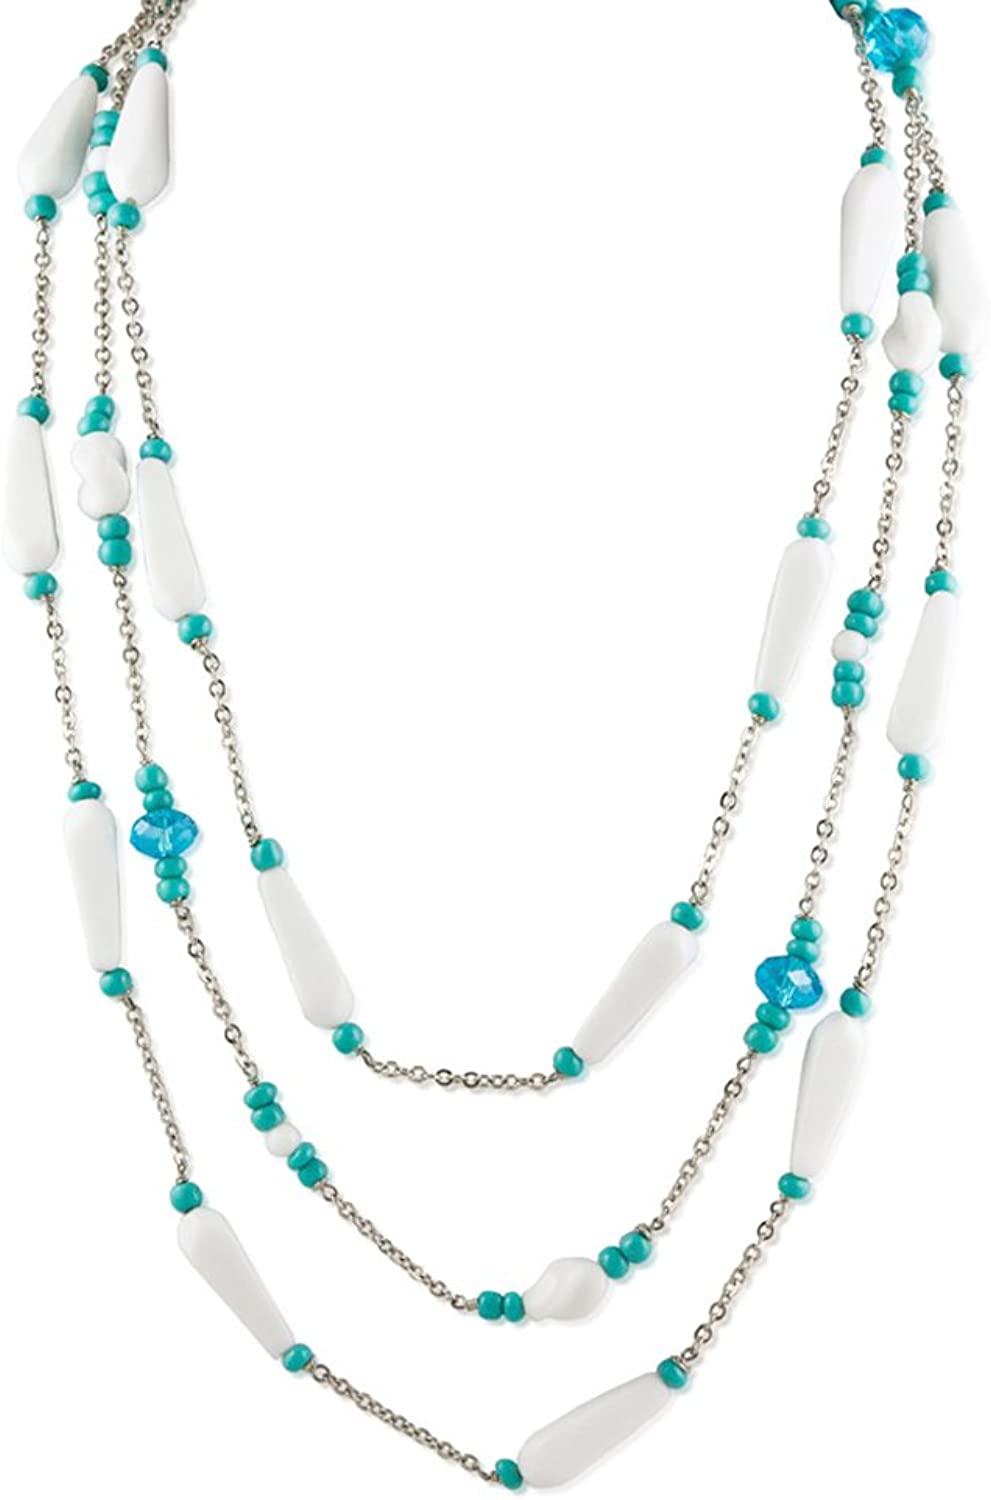 Alzerina Handmade Rhodium Plated Multilayer Swarovski Crystals and Vintage Glass Beads Necklace